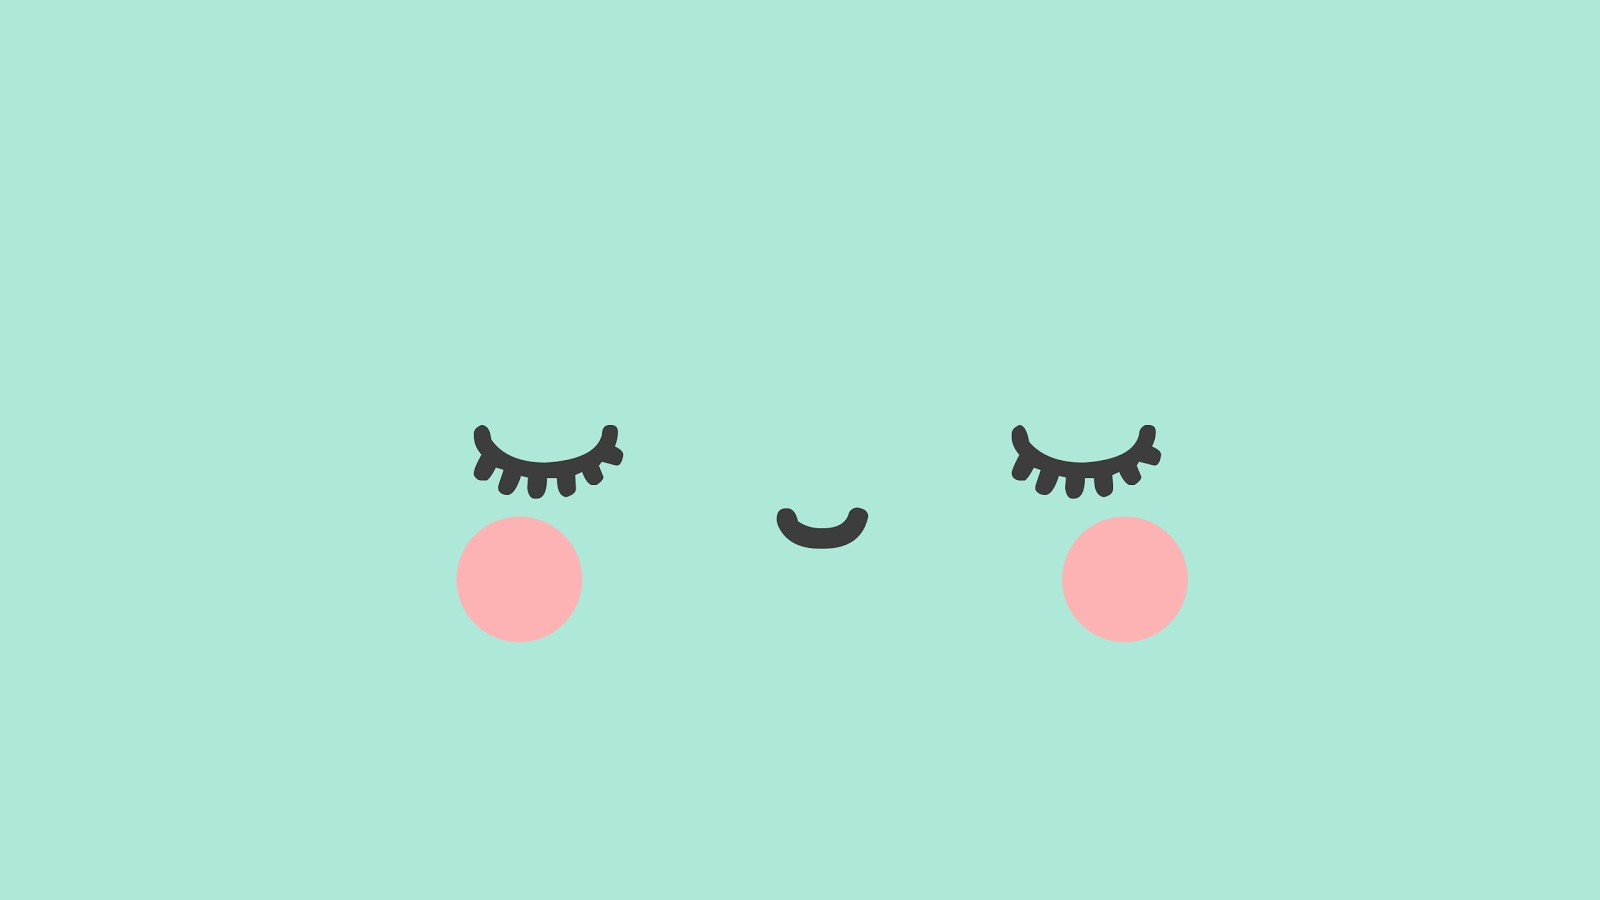 FREE KAWAII INSPIRED WALLPAPERS FOR YOUR DESKTOP OR PHONE ...